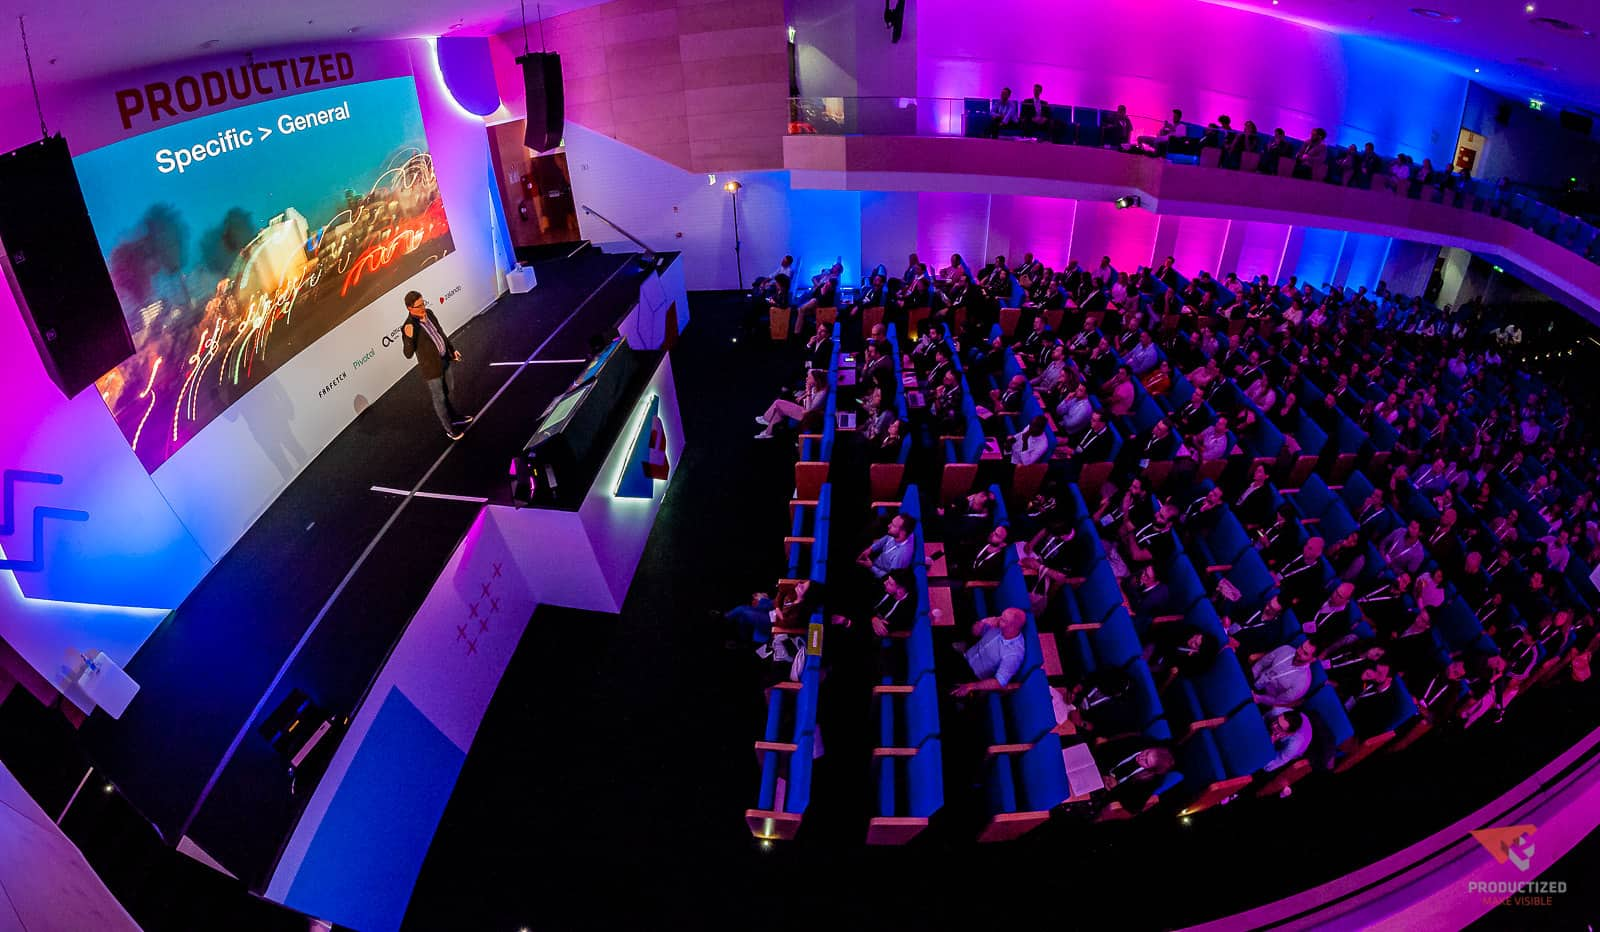 the venue and stage of the Productized conference, showing Steve Portigal on stage and the audience